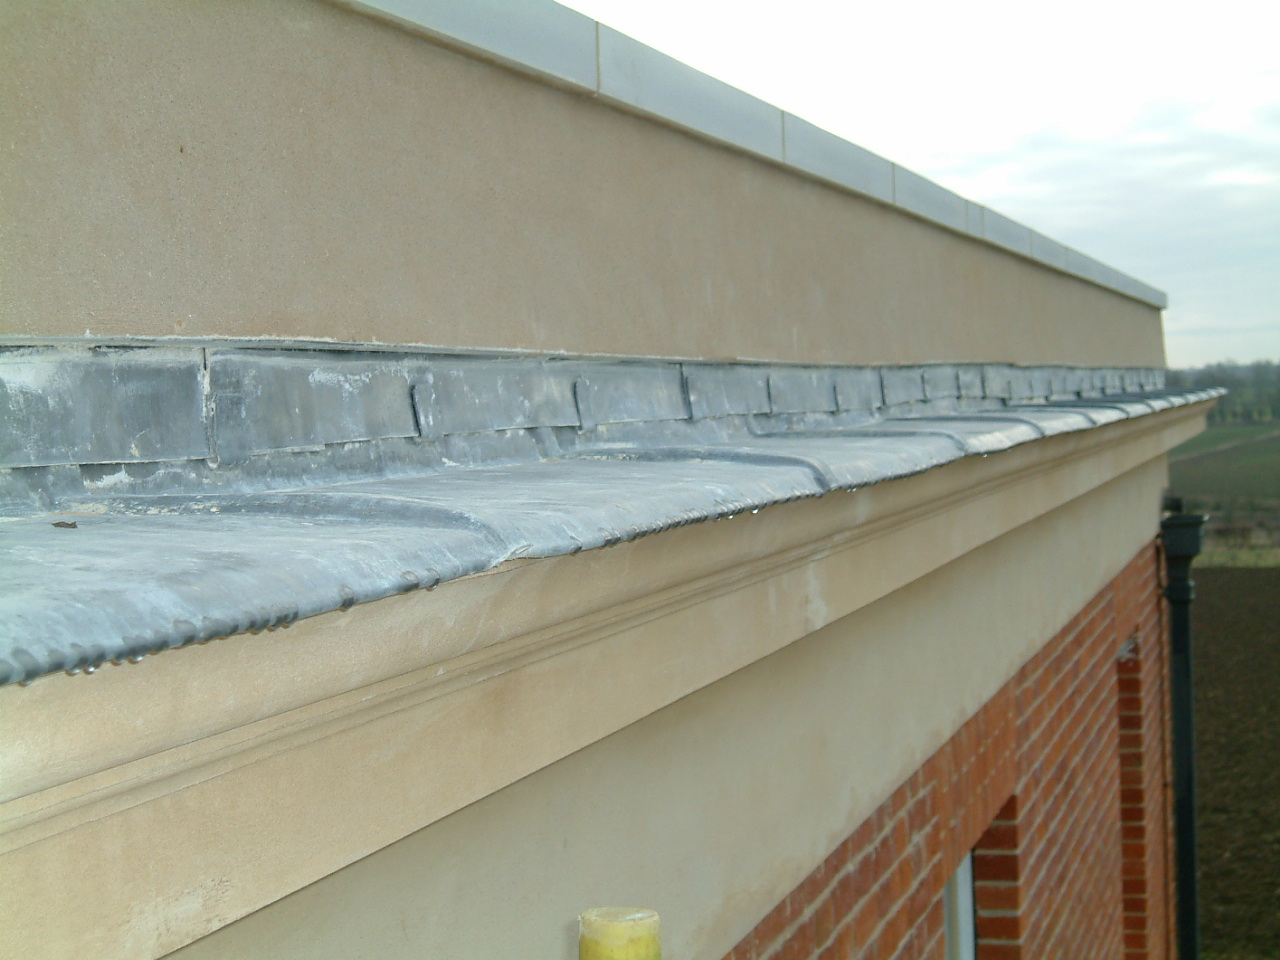 parrapet cornice and freize